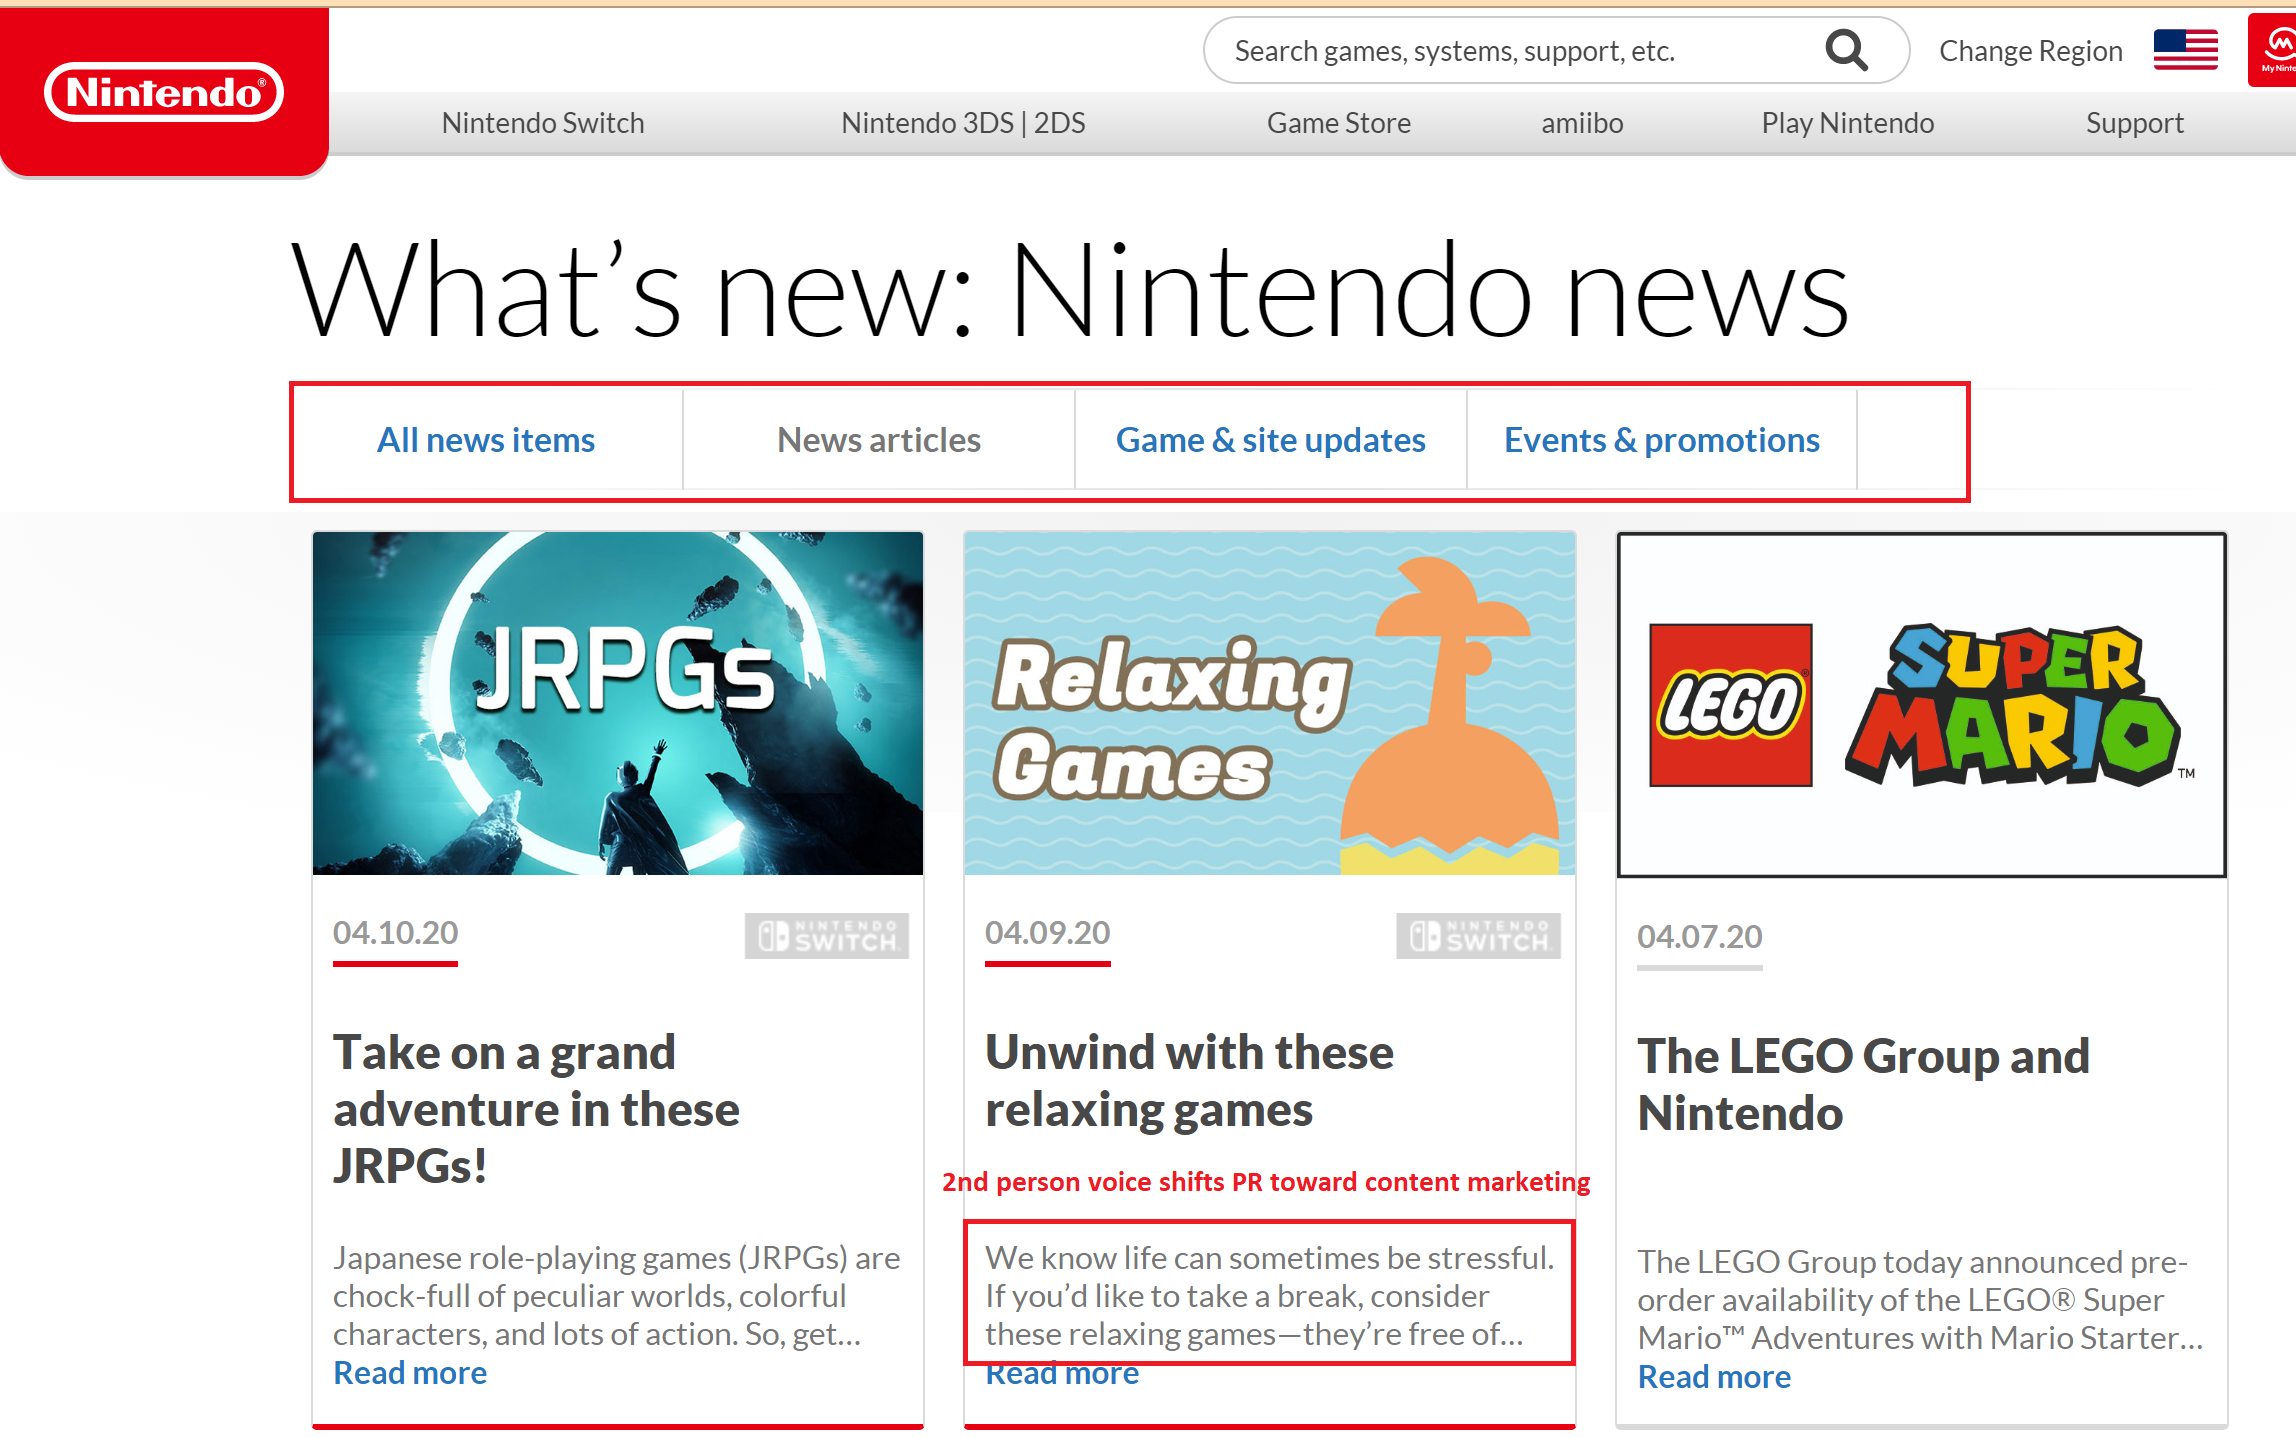 Fan-facing press releases from Nintendo